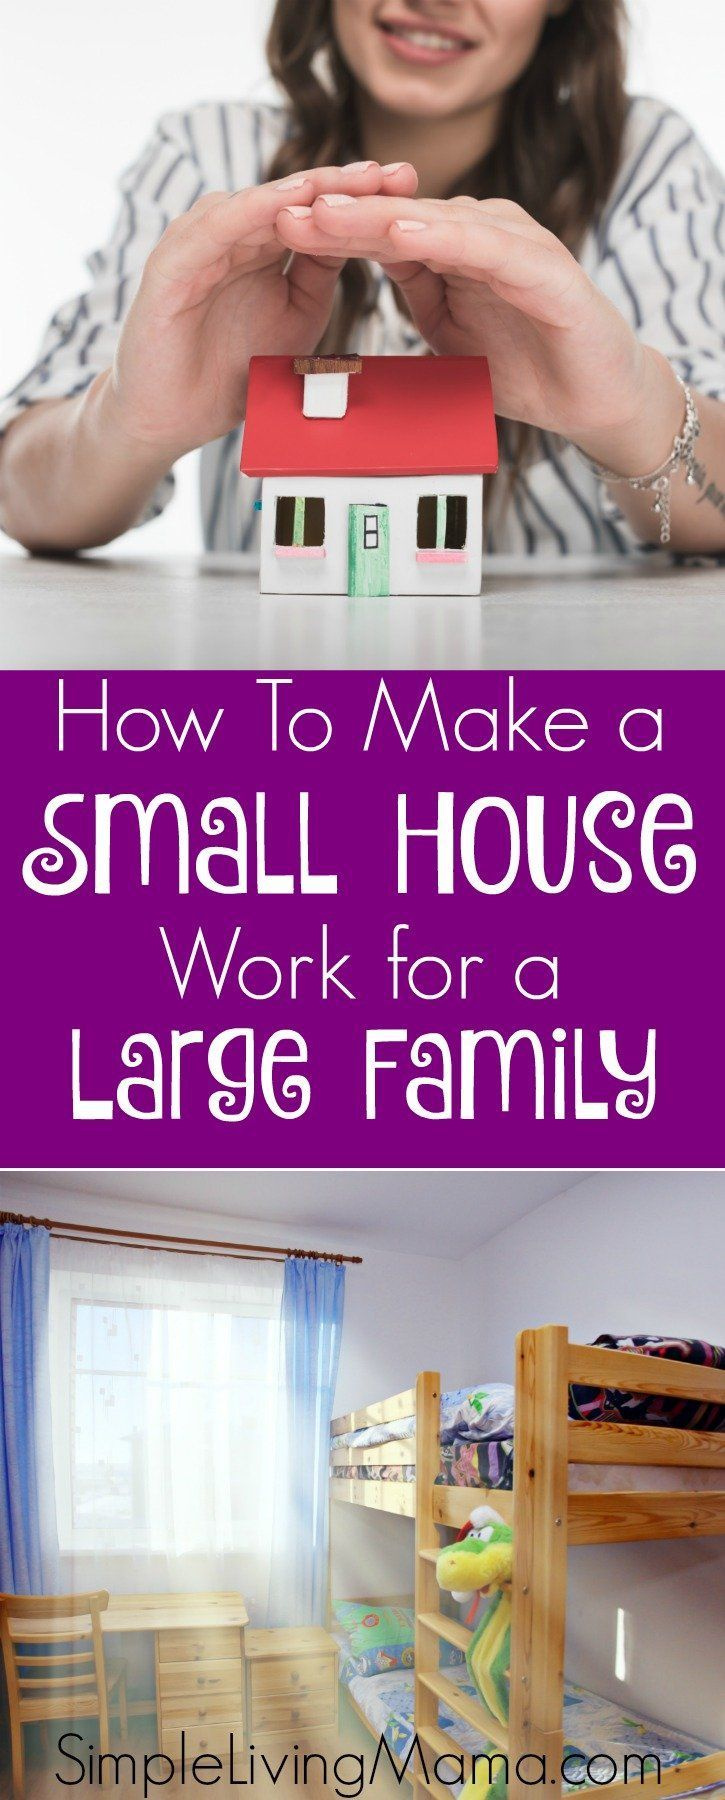 How To Make A Small House Work For A Large Family Simple Living Mama Small House Organization Large Family Organization Large Family